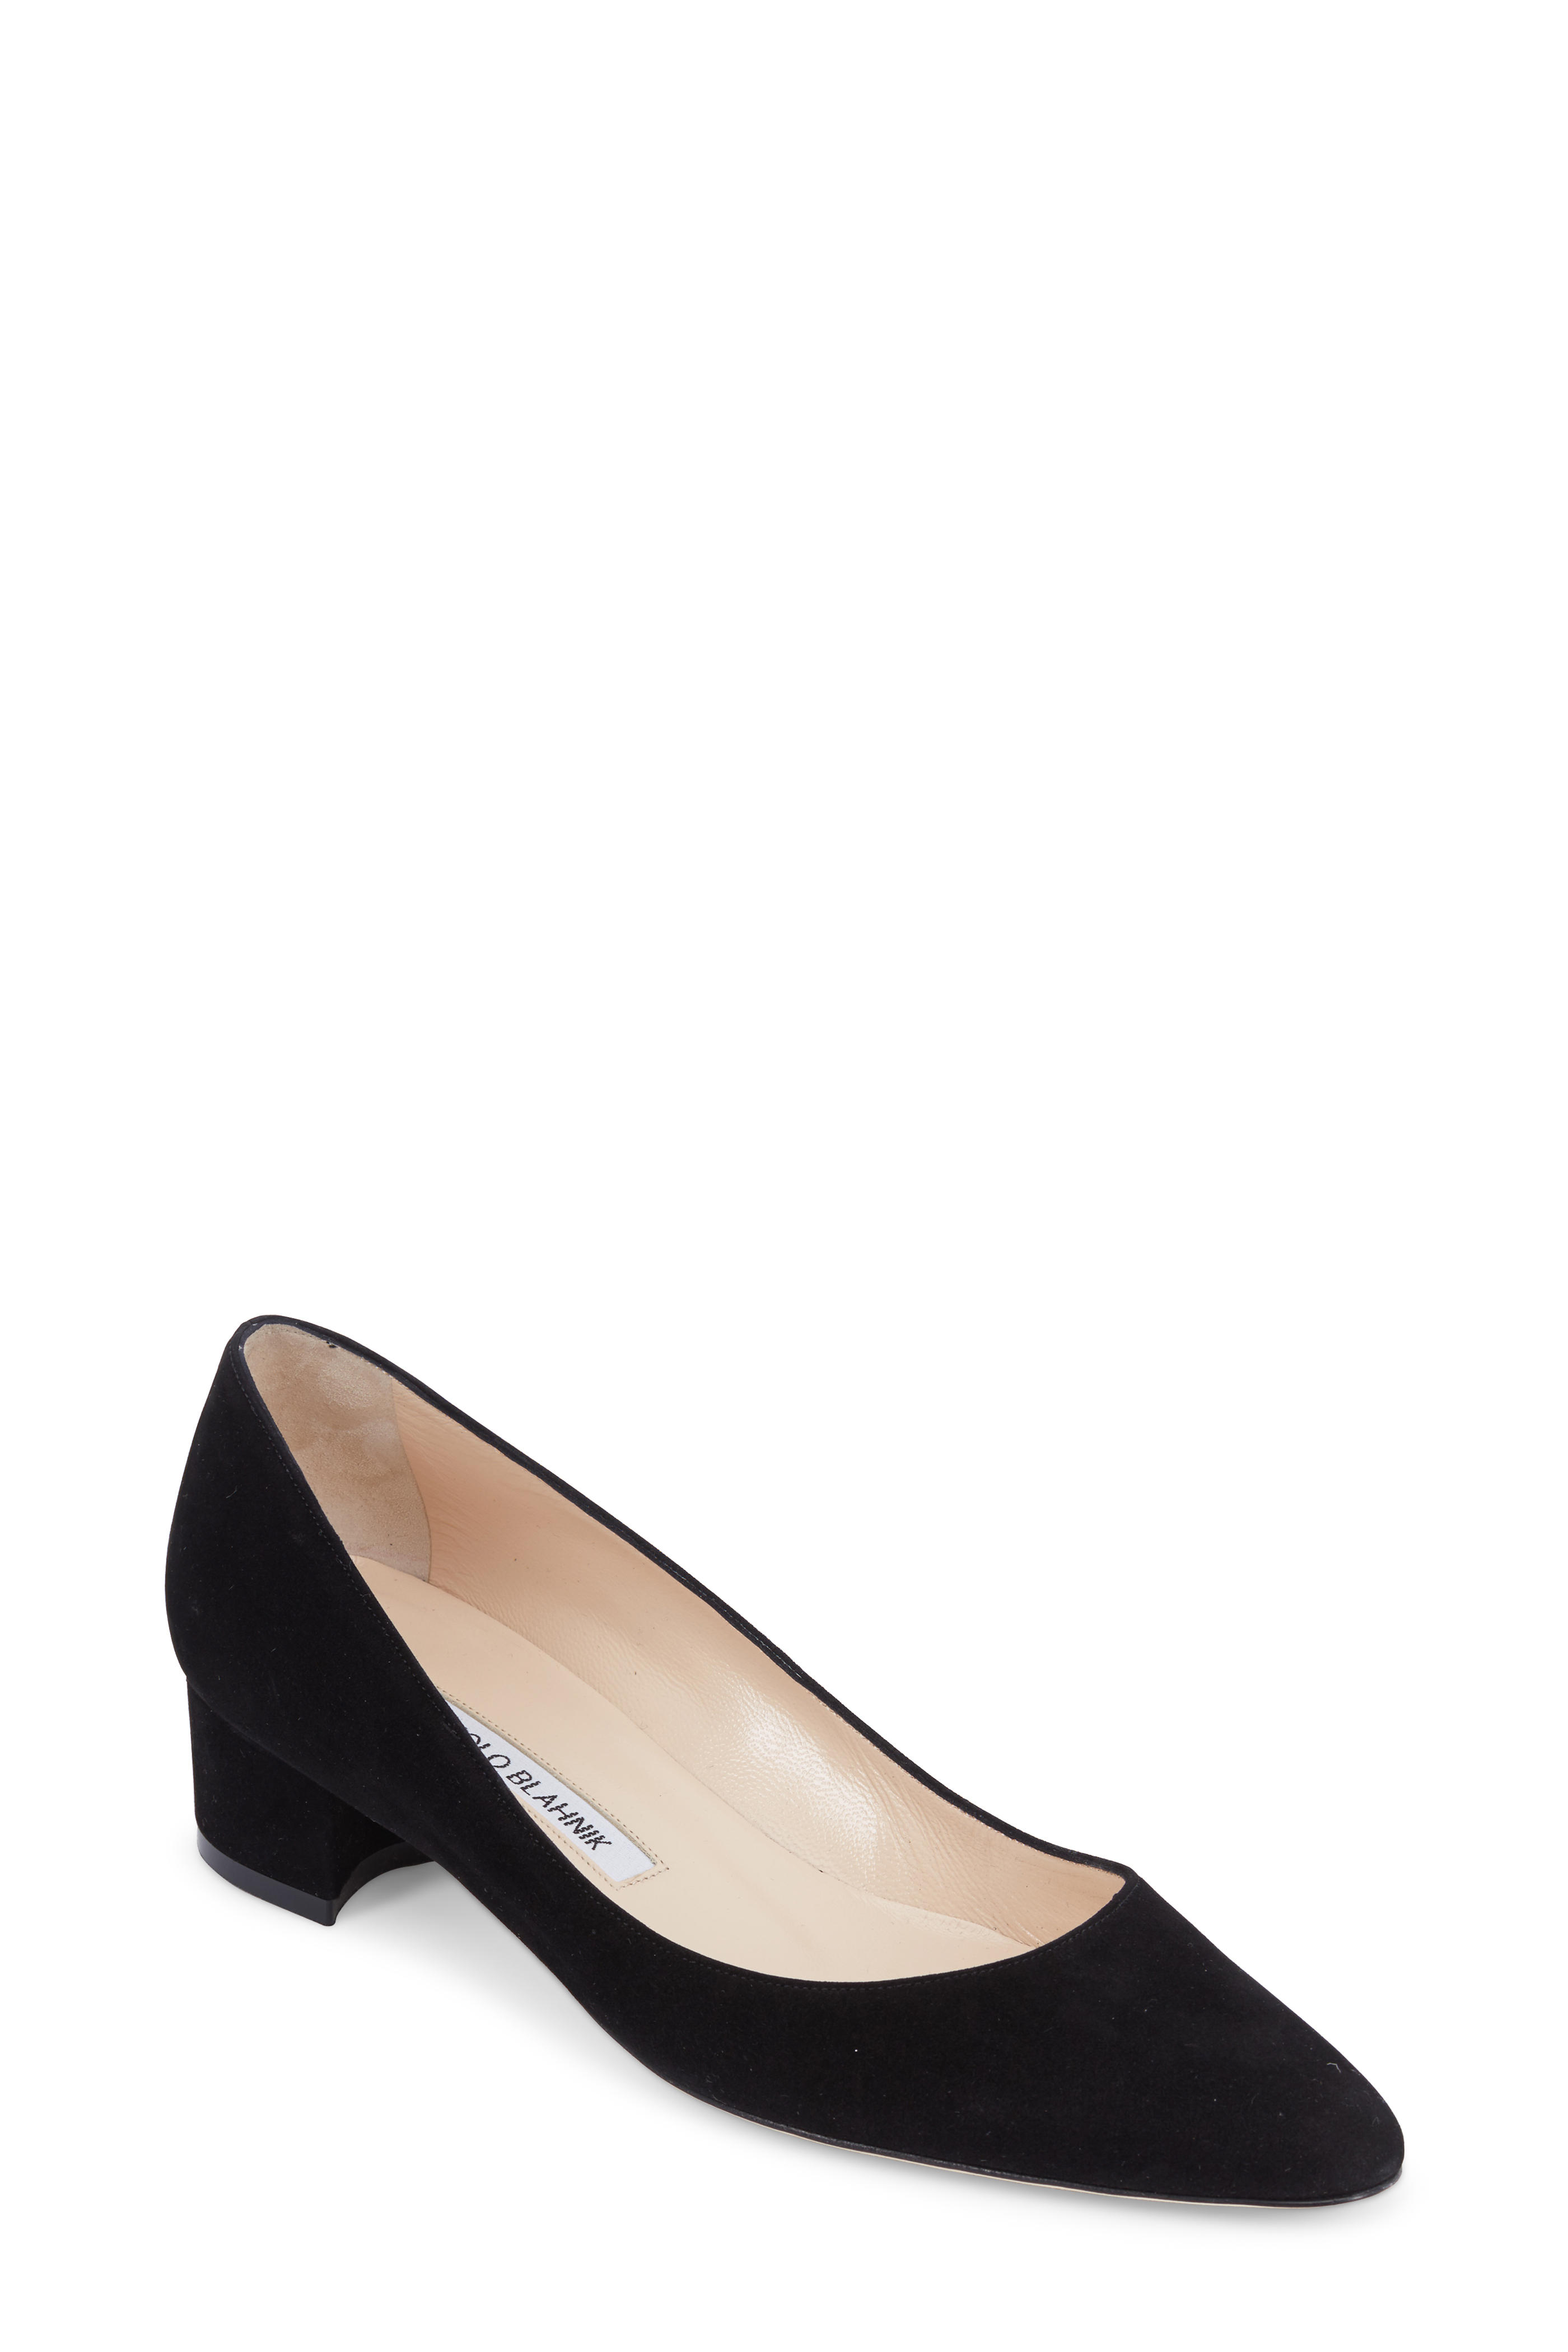 1bedcab58f78d Manolo Blahnik - Listony Black Suede Low-Heel Pump, 30mm | Mitchell ...